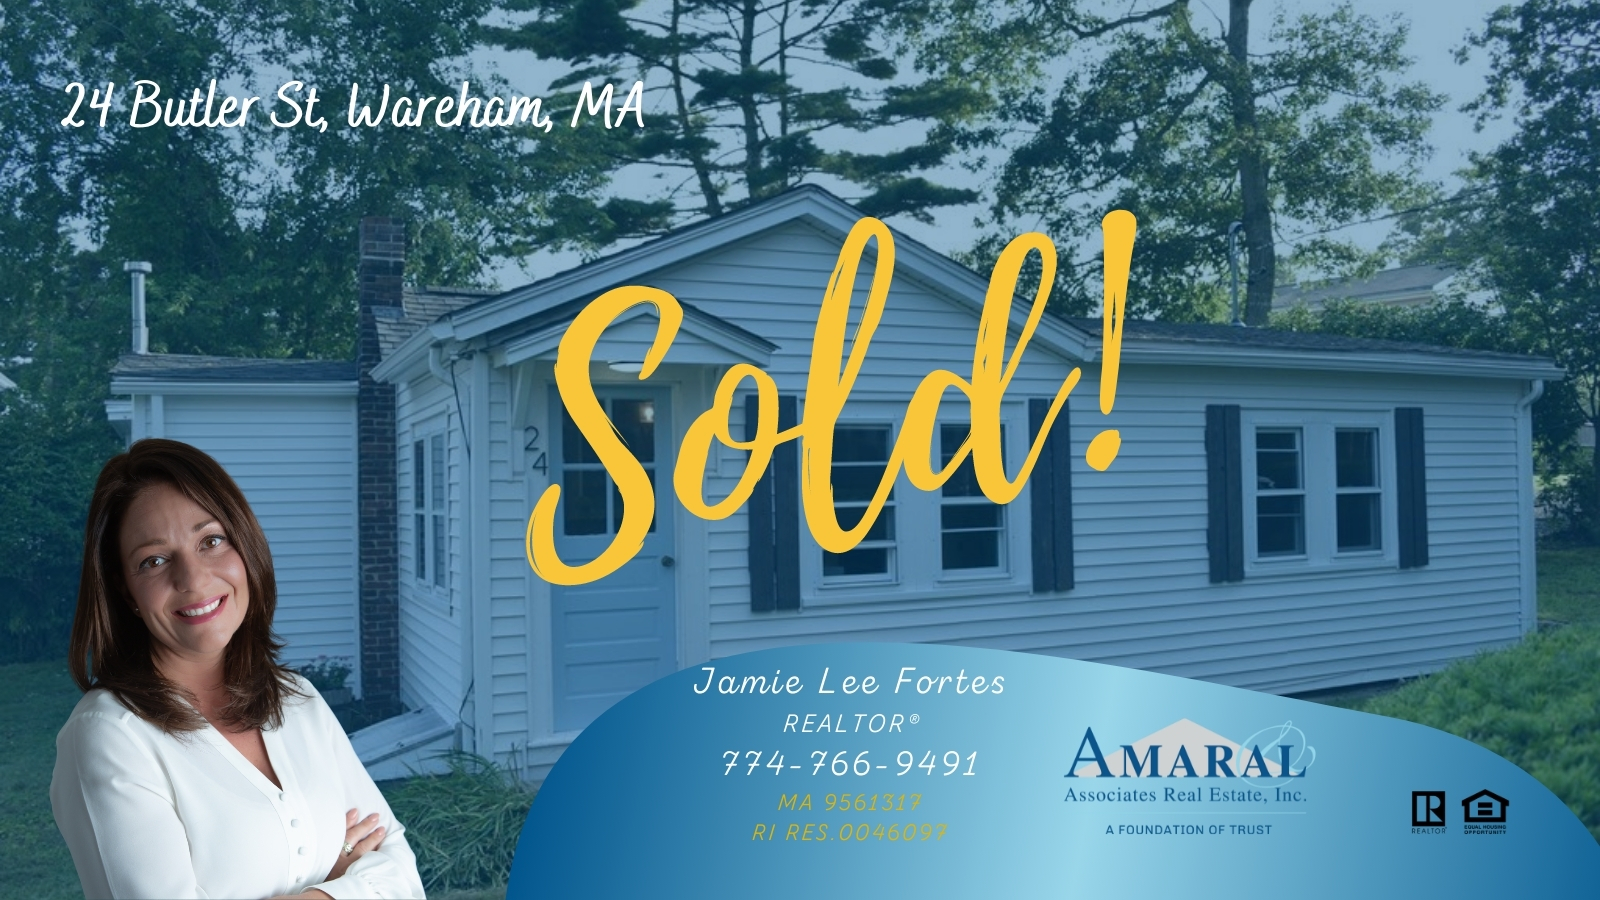 SOLD with Jamie Lee Fortes! 24 Butler St, Wareham, MA